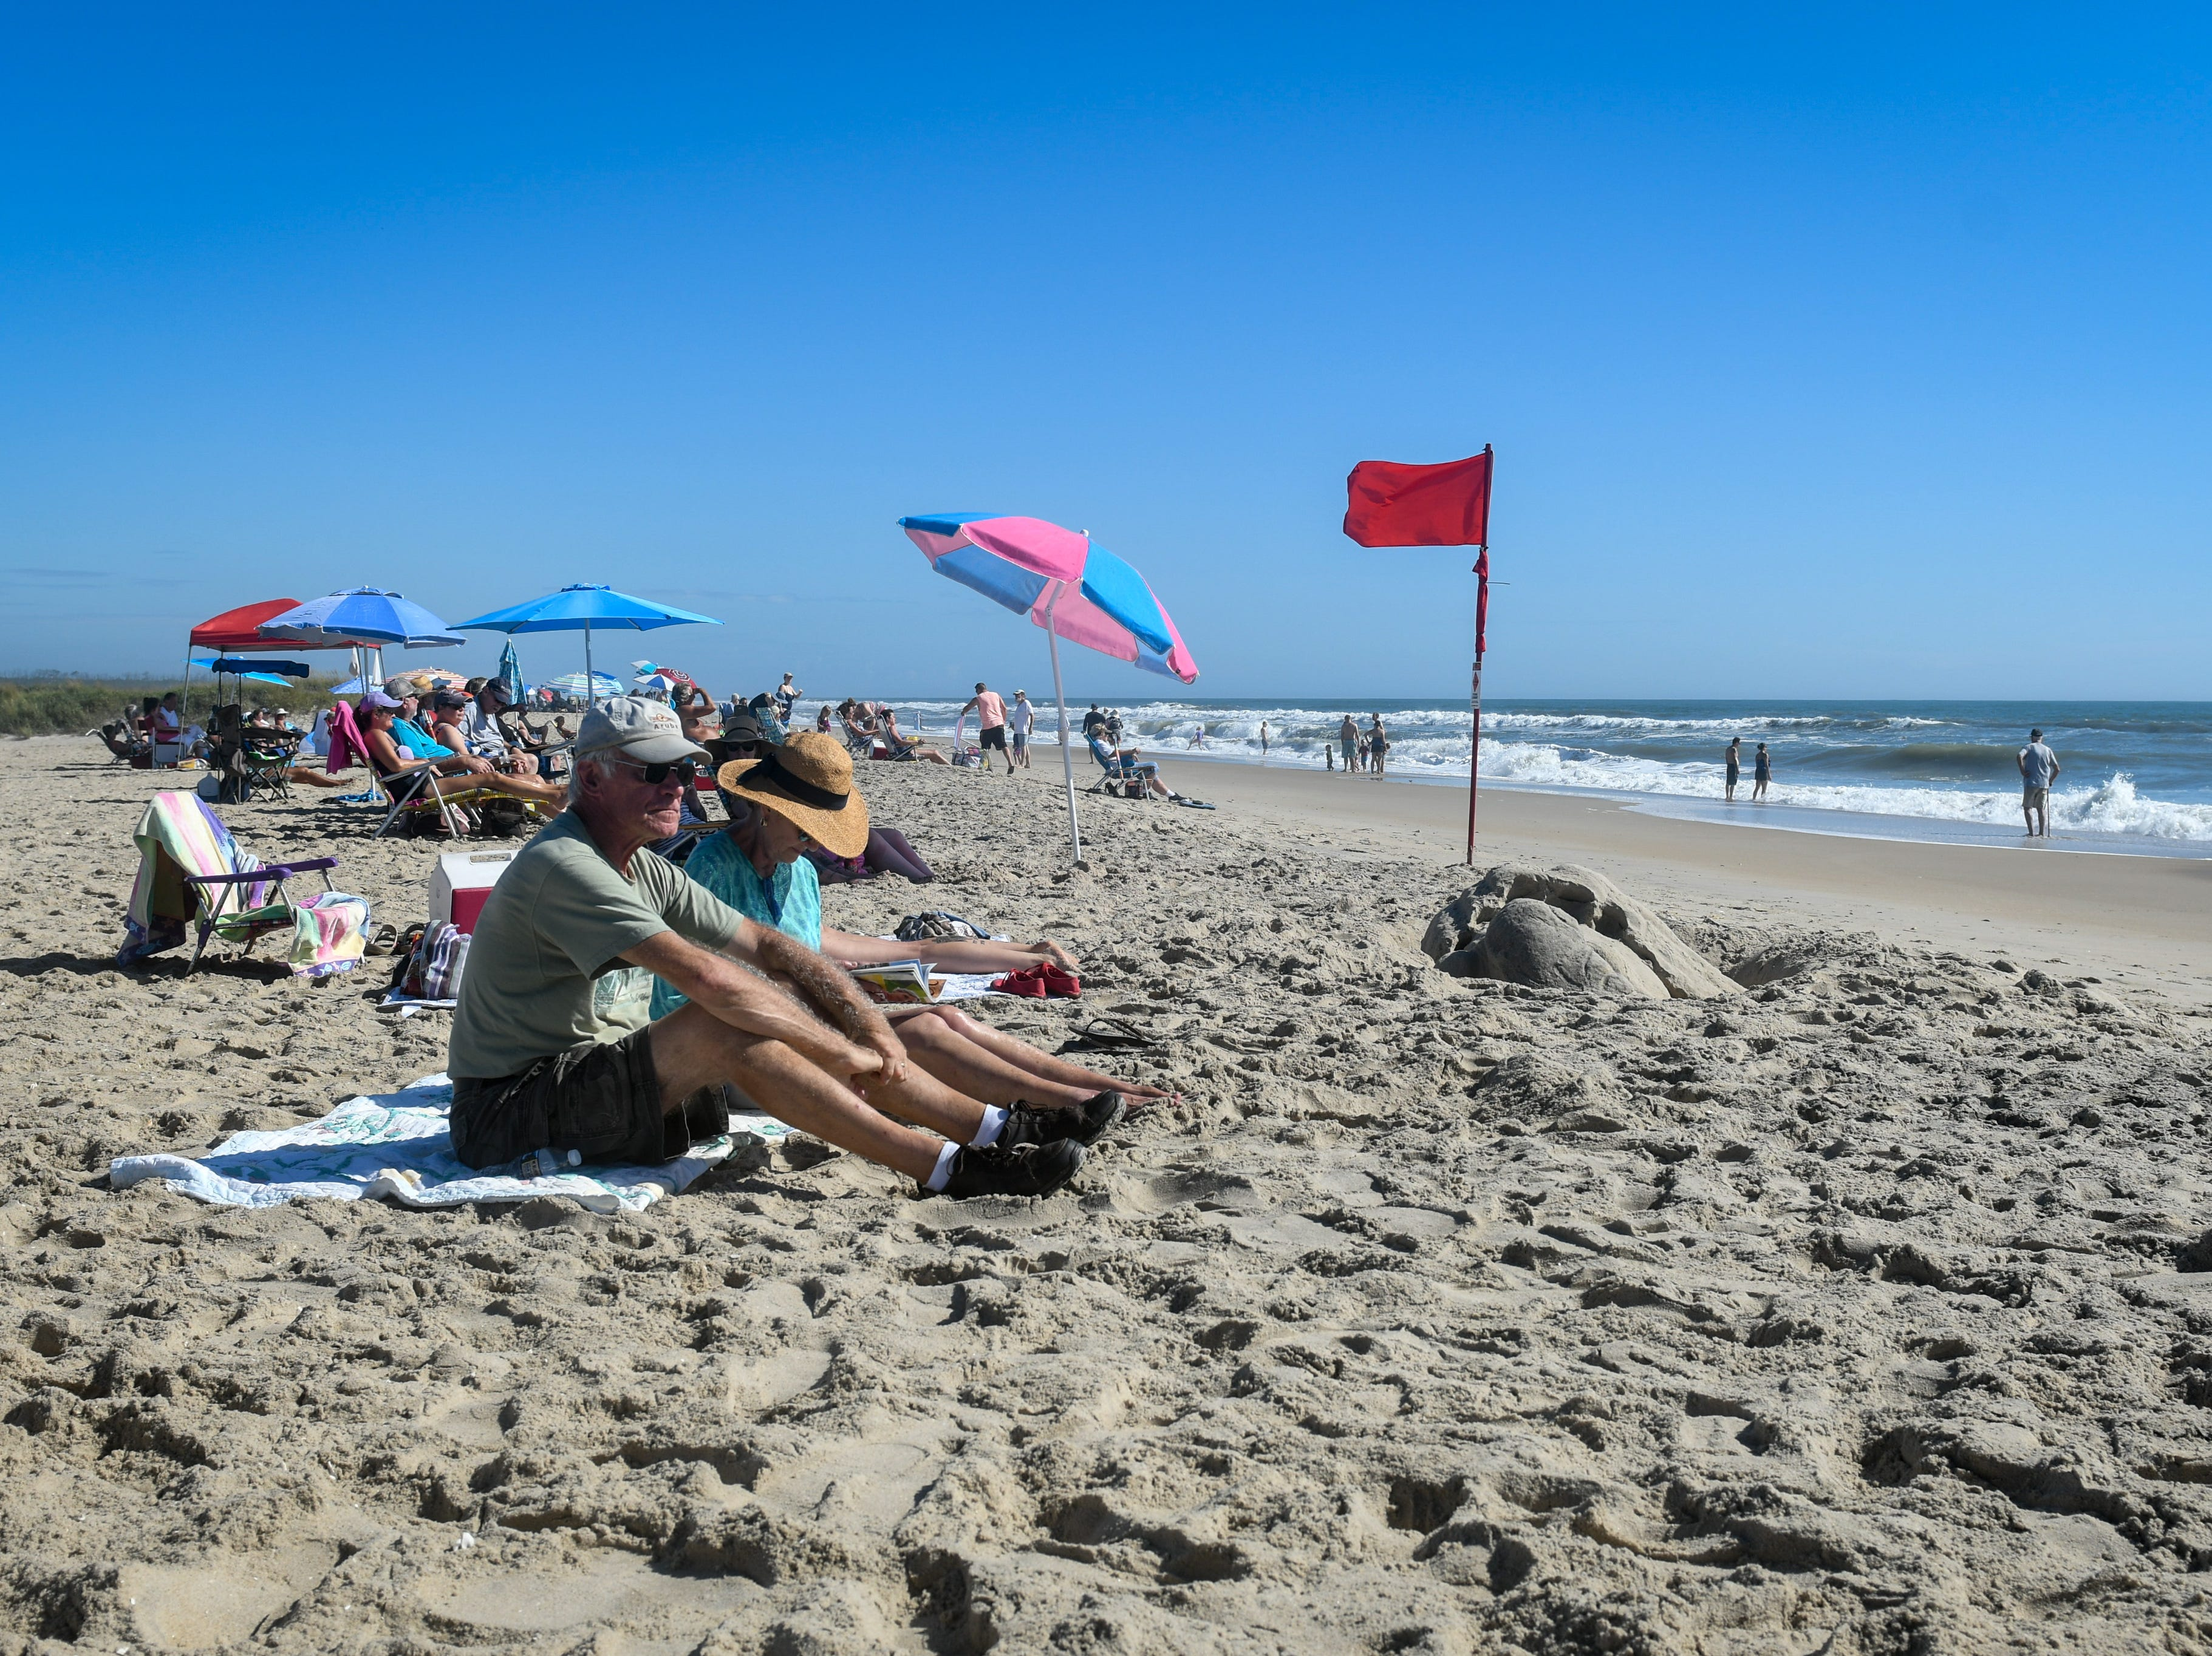 Carol and Ed Ryan, visitors from Long Island, enjoyed the beach on Tuesday, Sept. 11. The two said they had heard the island is part of the state's zone A evacuation that was issued in advance of Hurricane Florence, but are not planning on leaving yet.